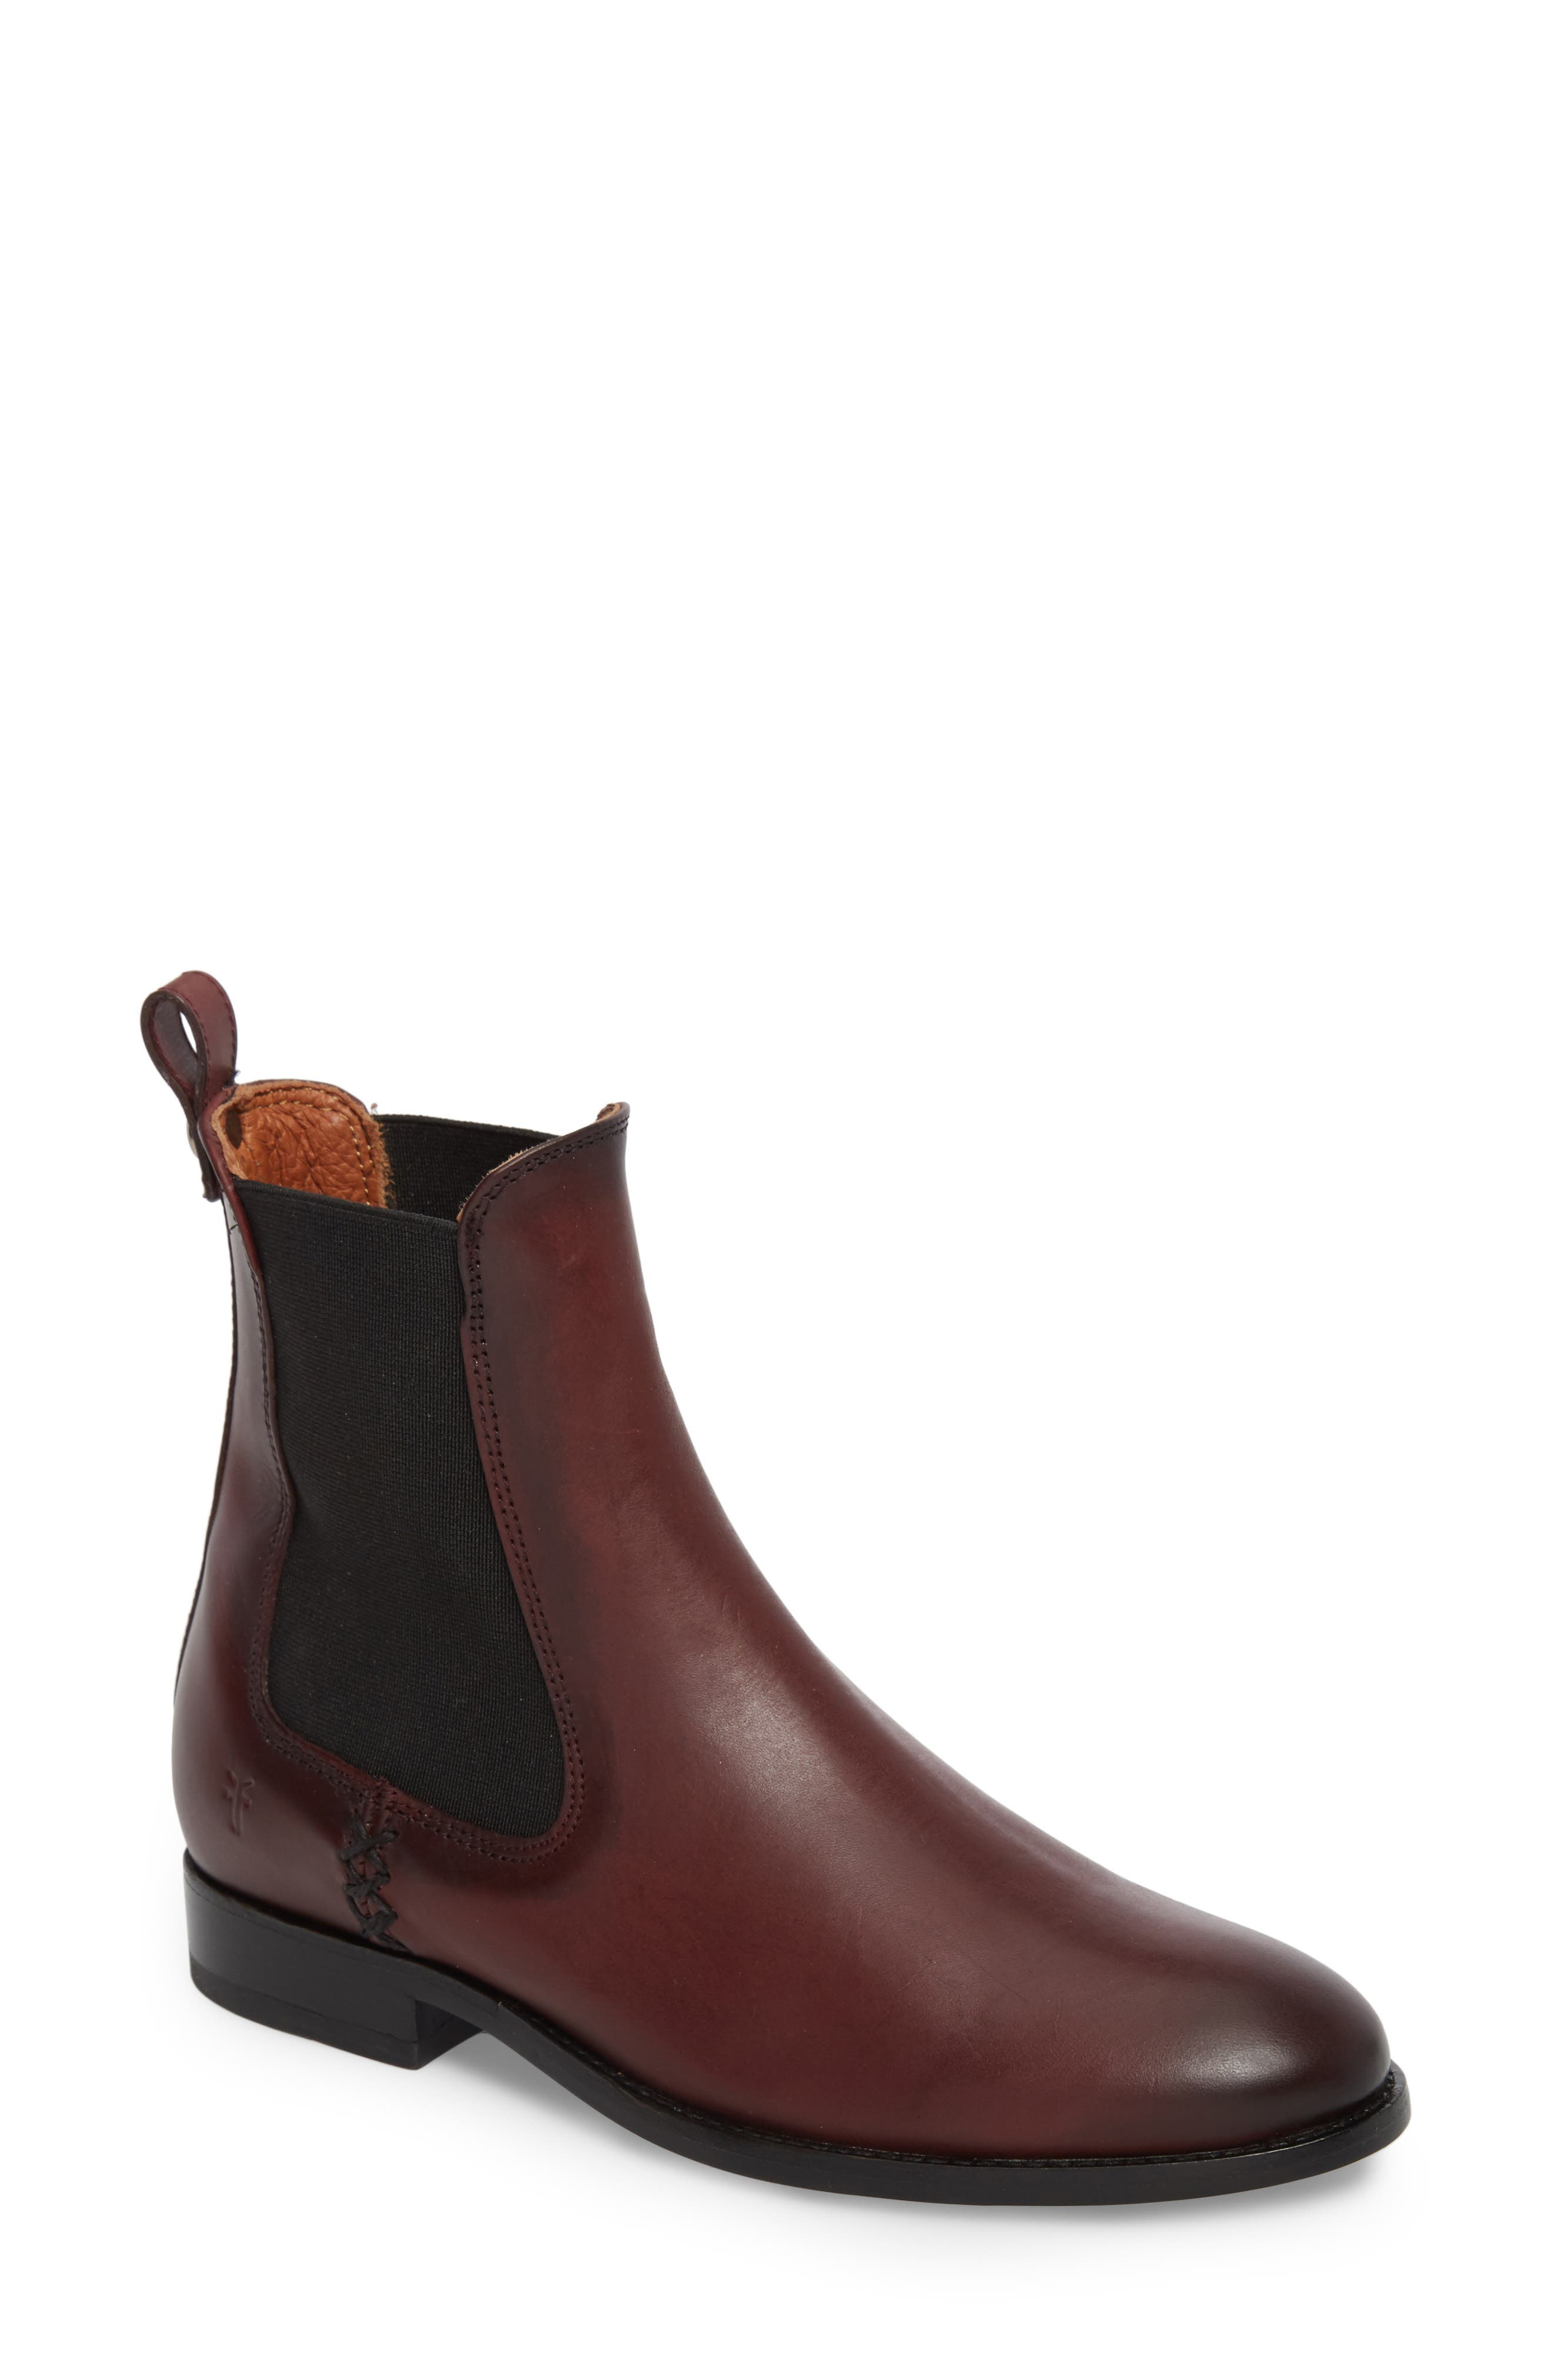 Melissa Chelsea Boot,                             Main thumbnail 1, color,                             930